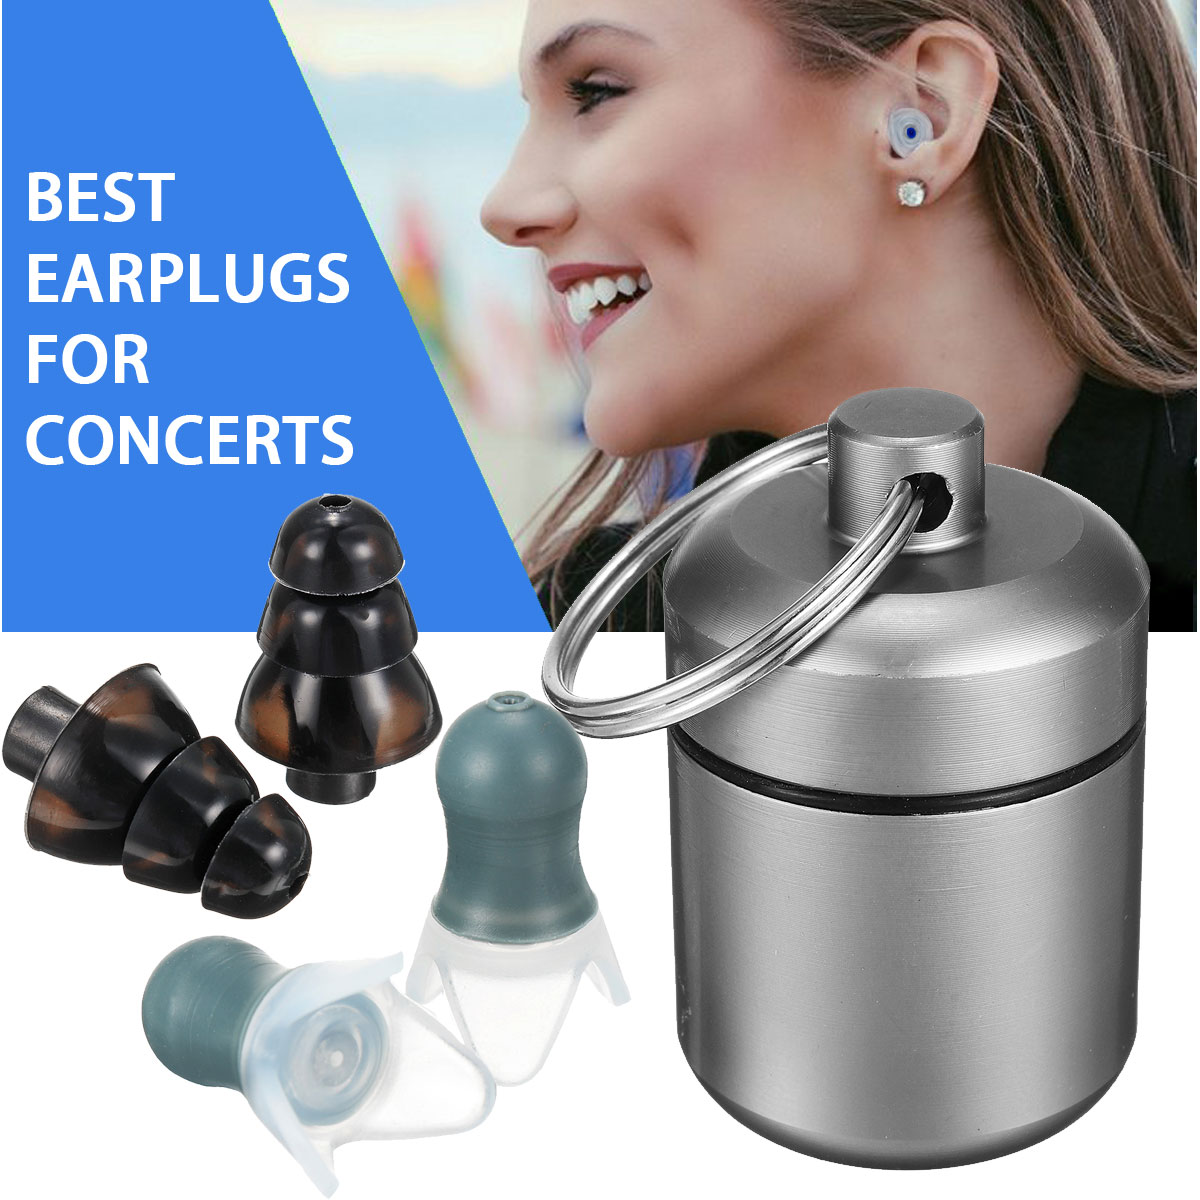 2 Pair Waterproof Noise Canceling Earplugs Swimming Earplugs Music Hearing Protectors Outdoor Travel